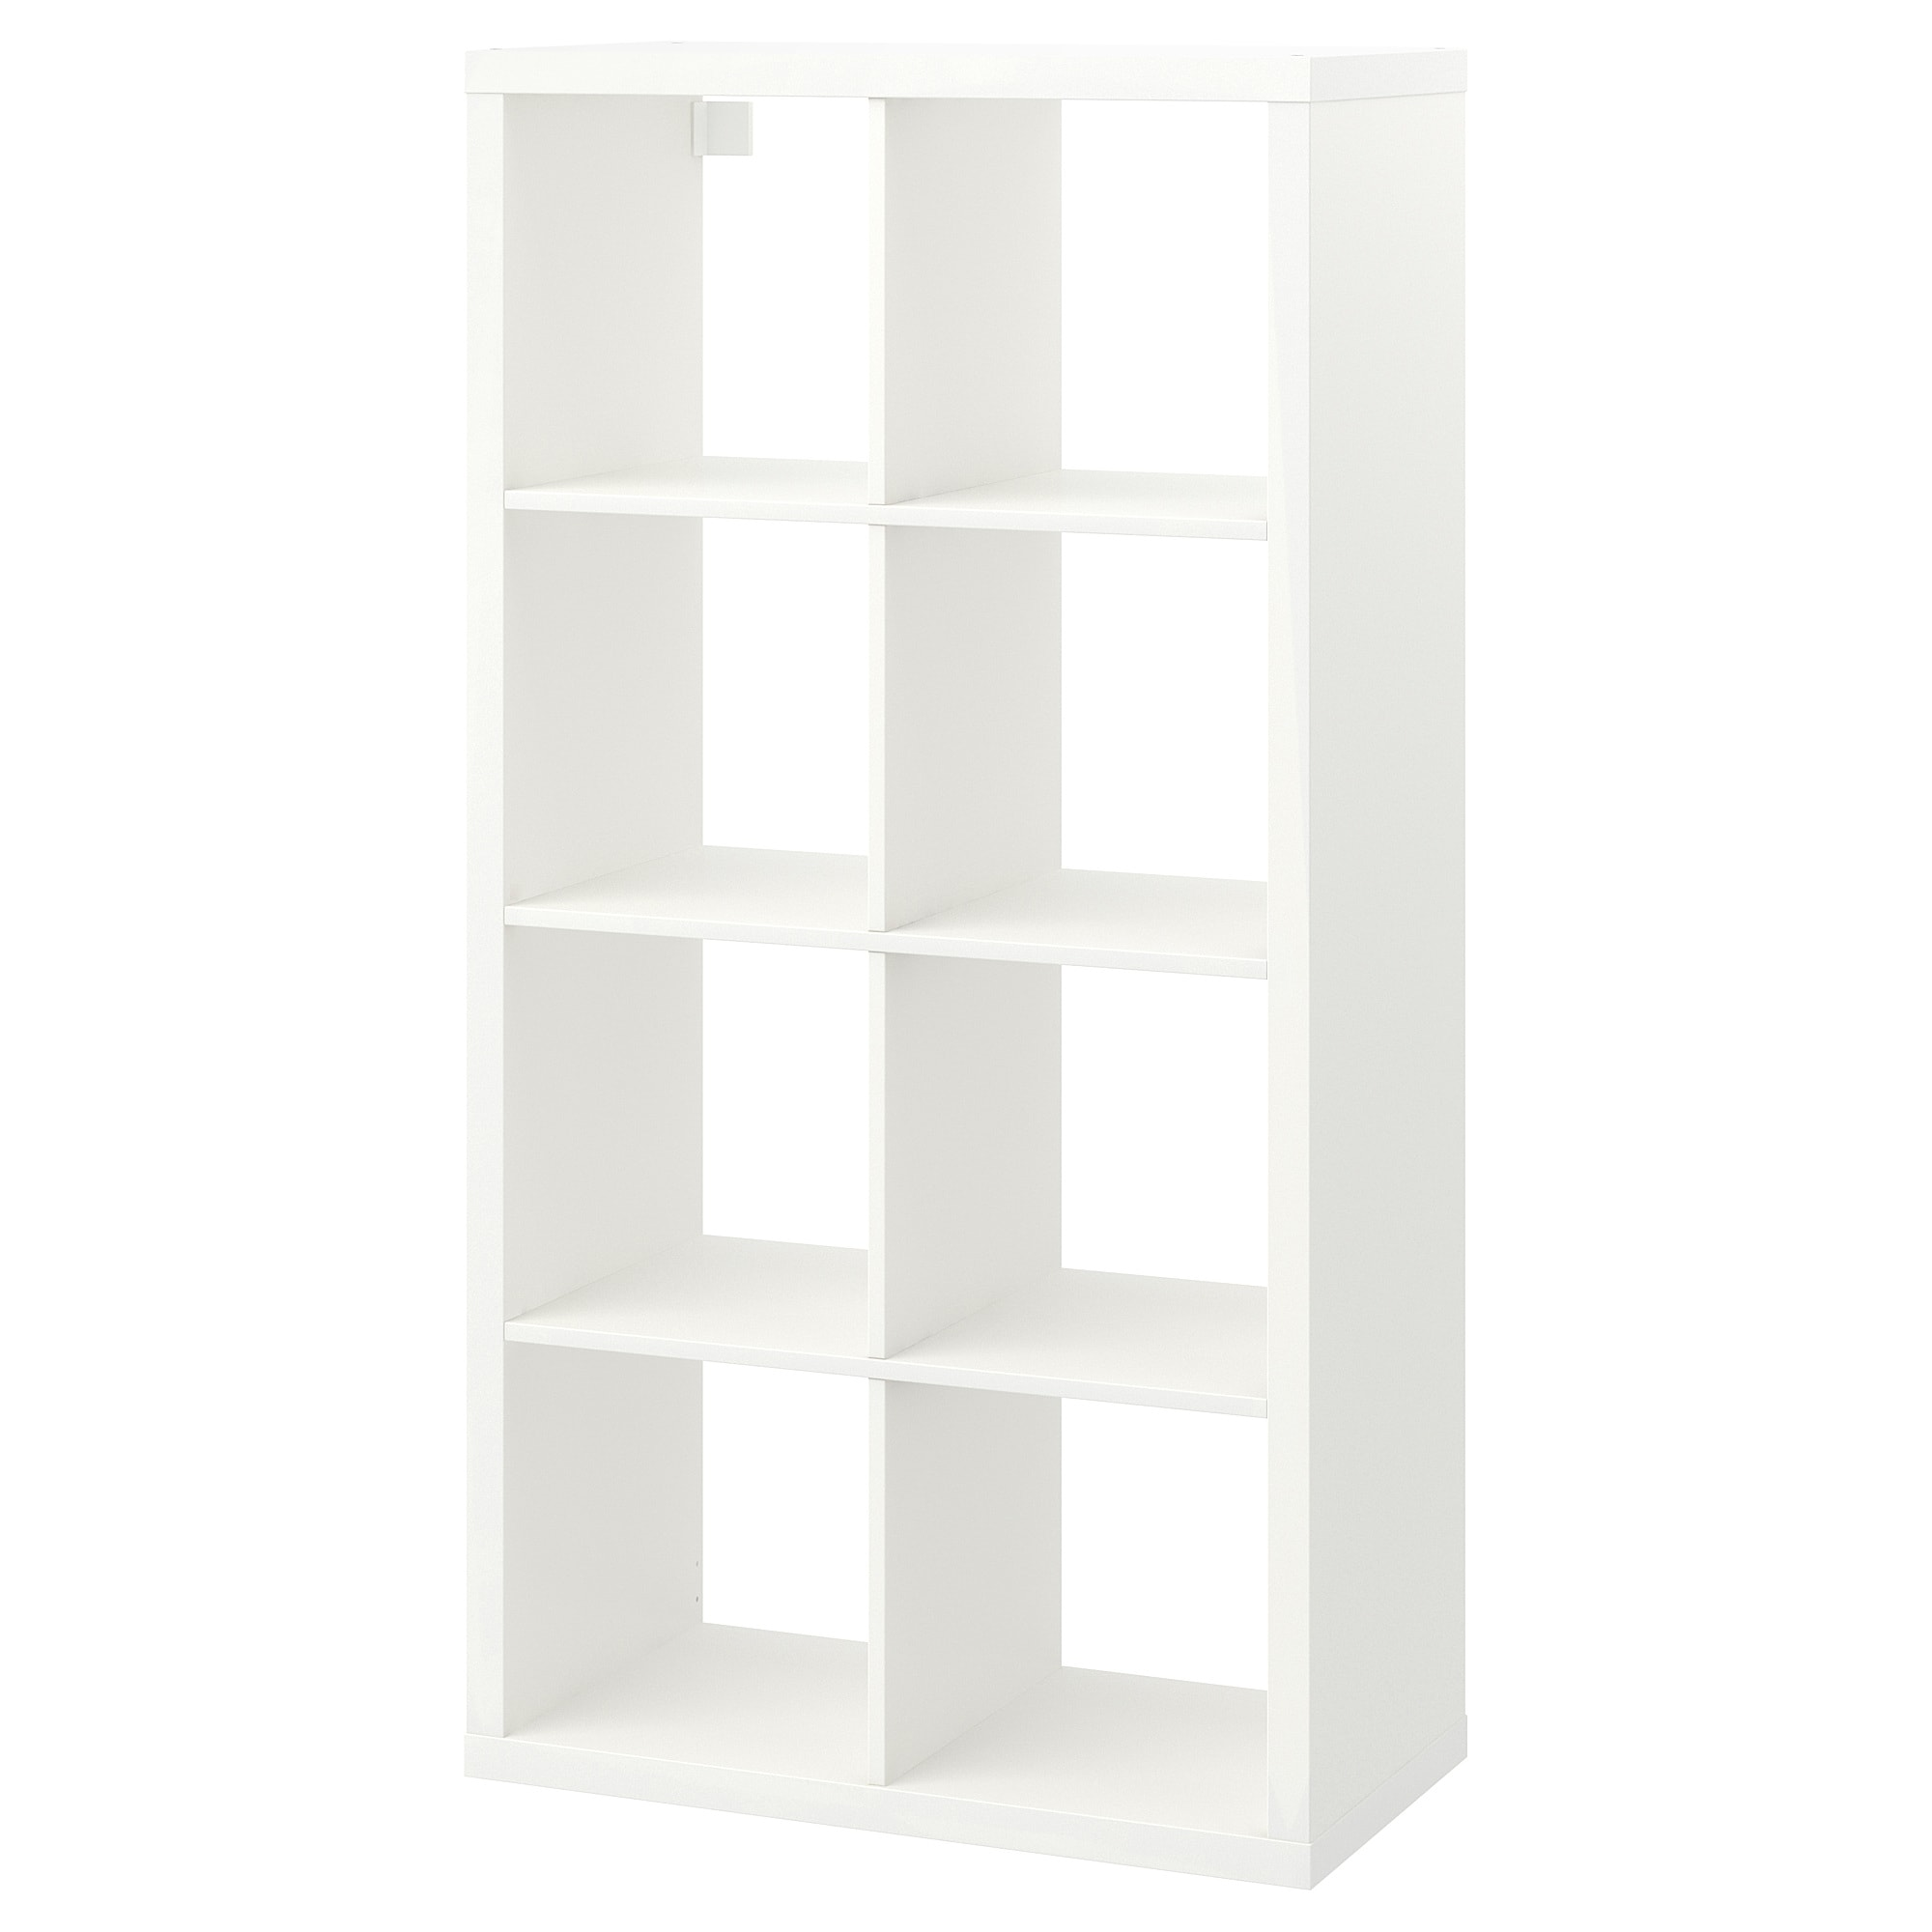 cube storage cubes ikea kallax shelving unit white floating shelves ceramic shower base wall mount glass dvd shelf long thin command strips for flat screen with deep industrial